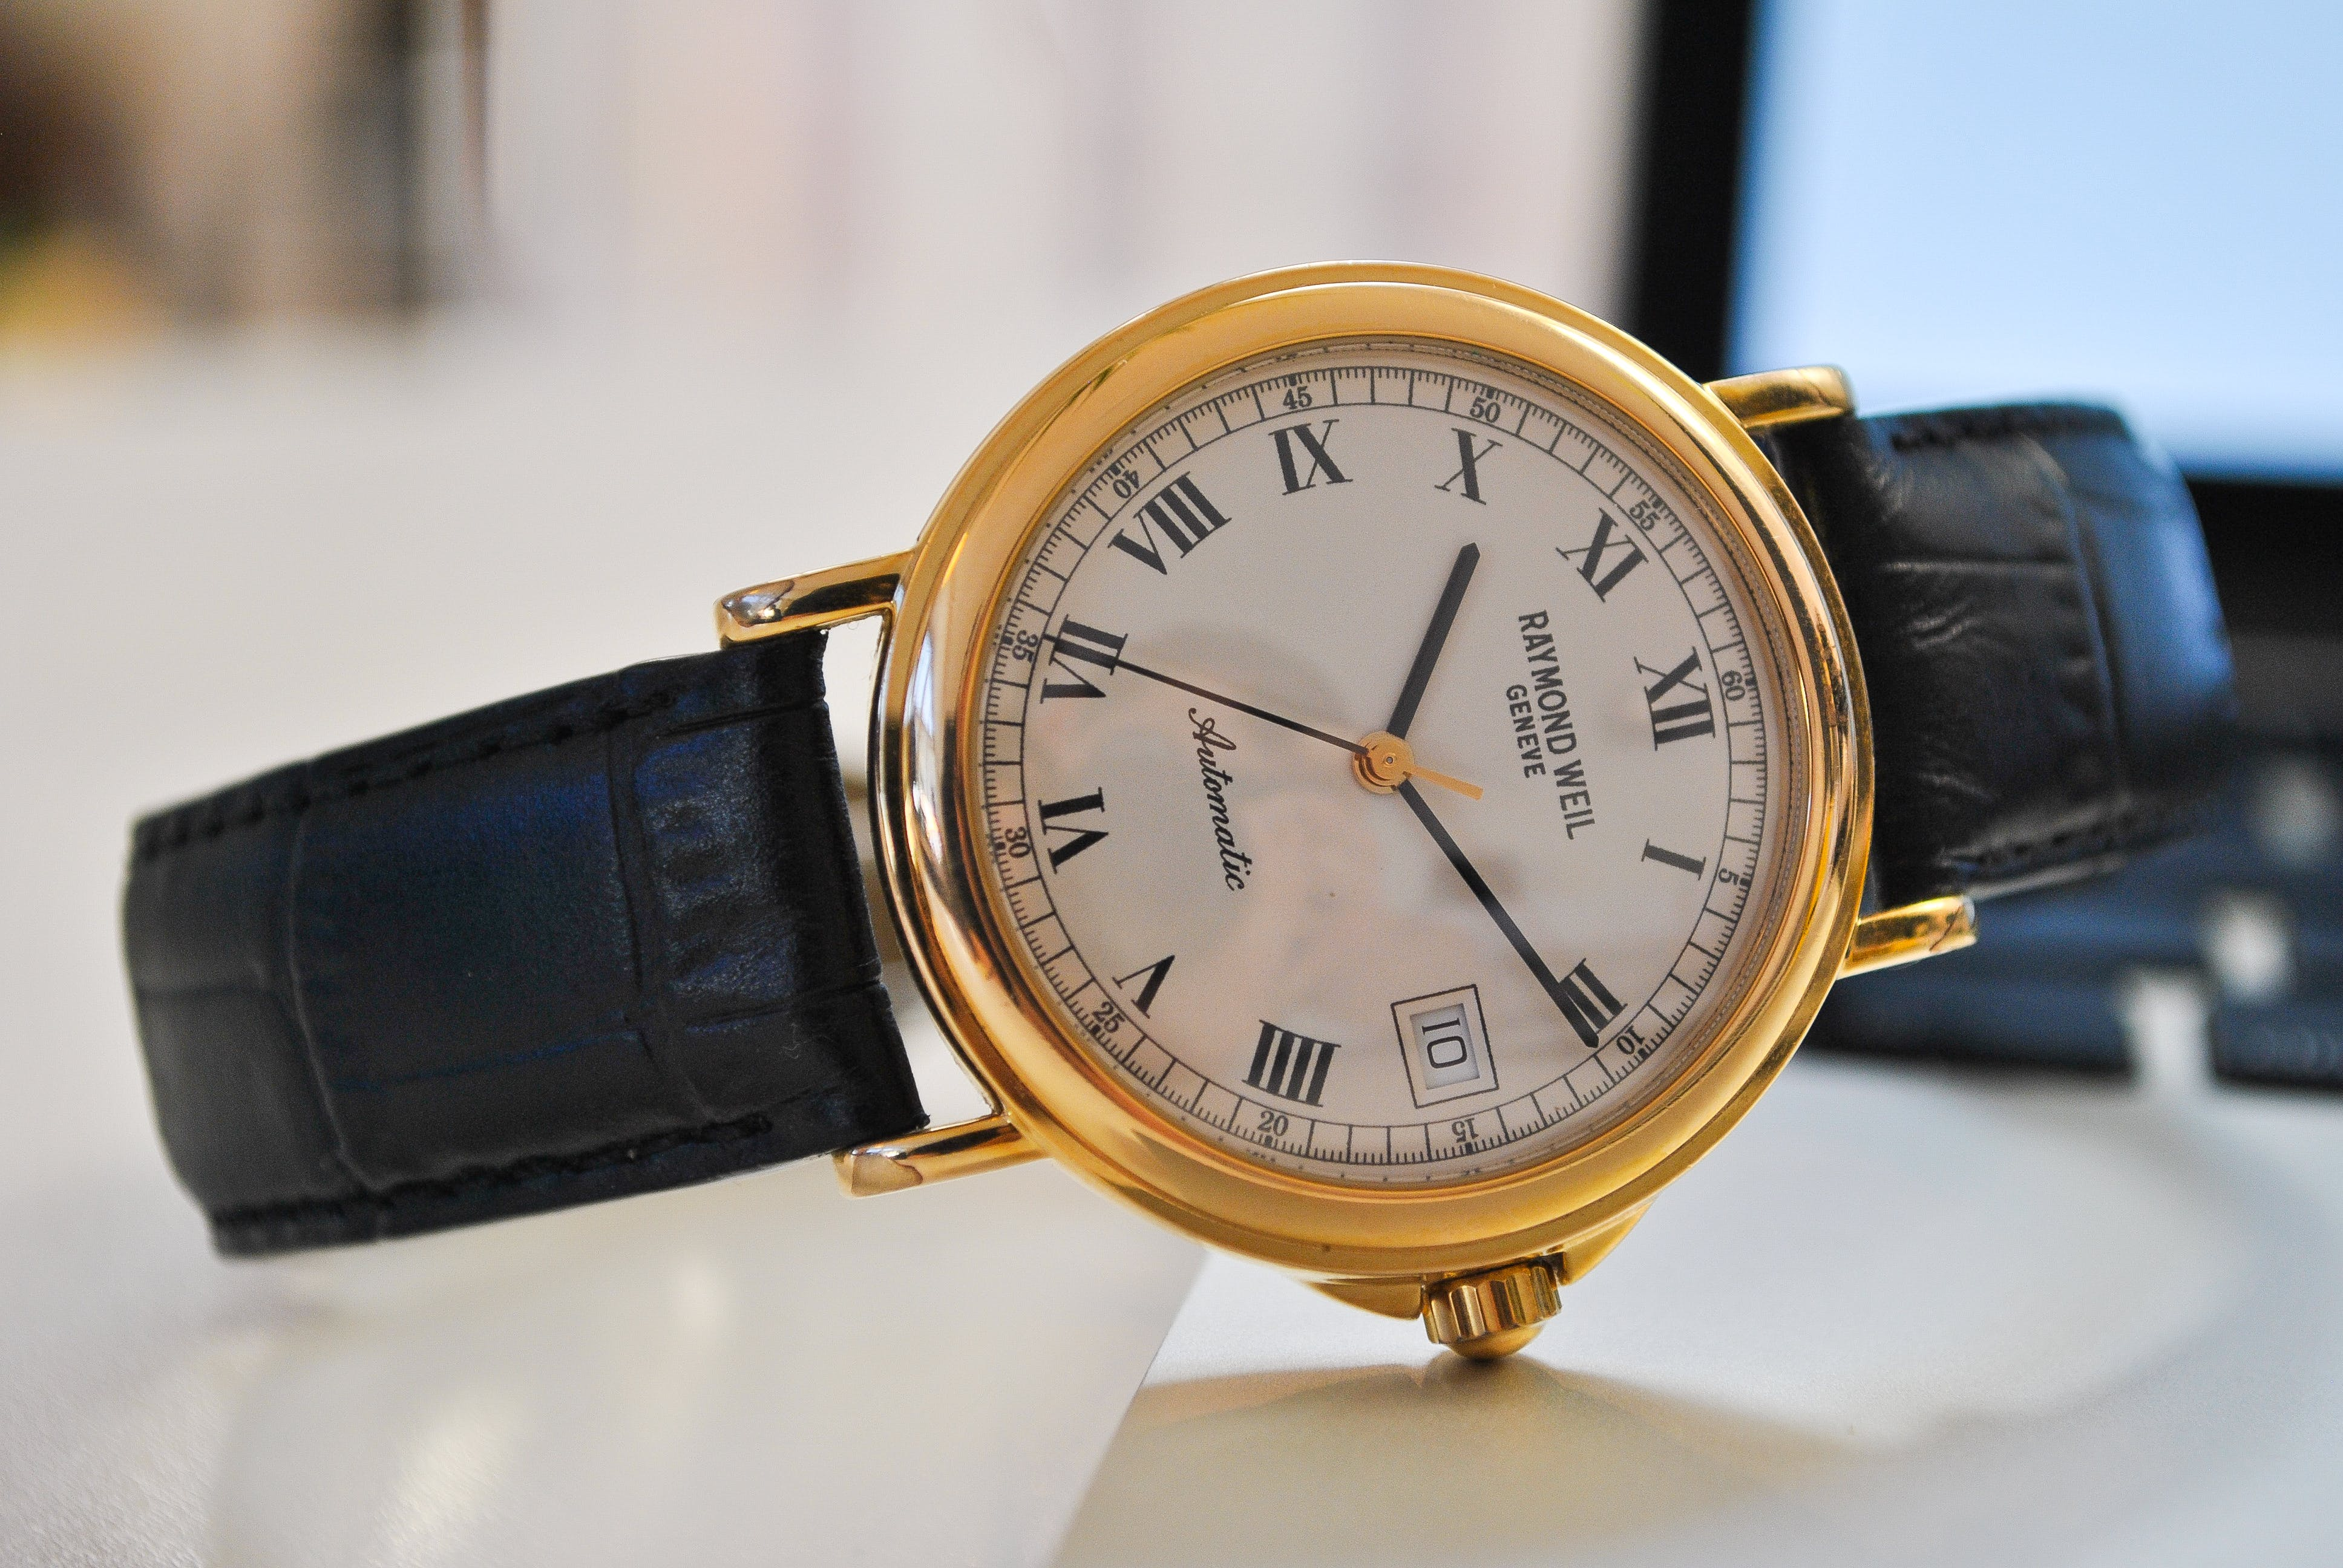 Round Gold-colored Analog Watch With Black Leather Strap at 10:10